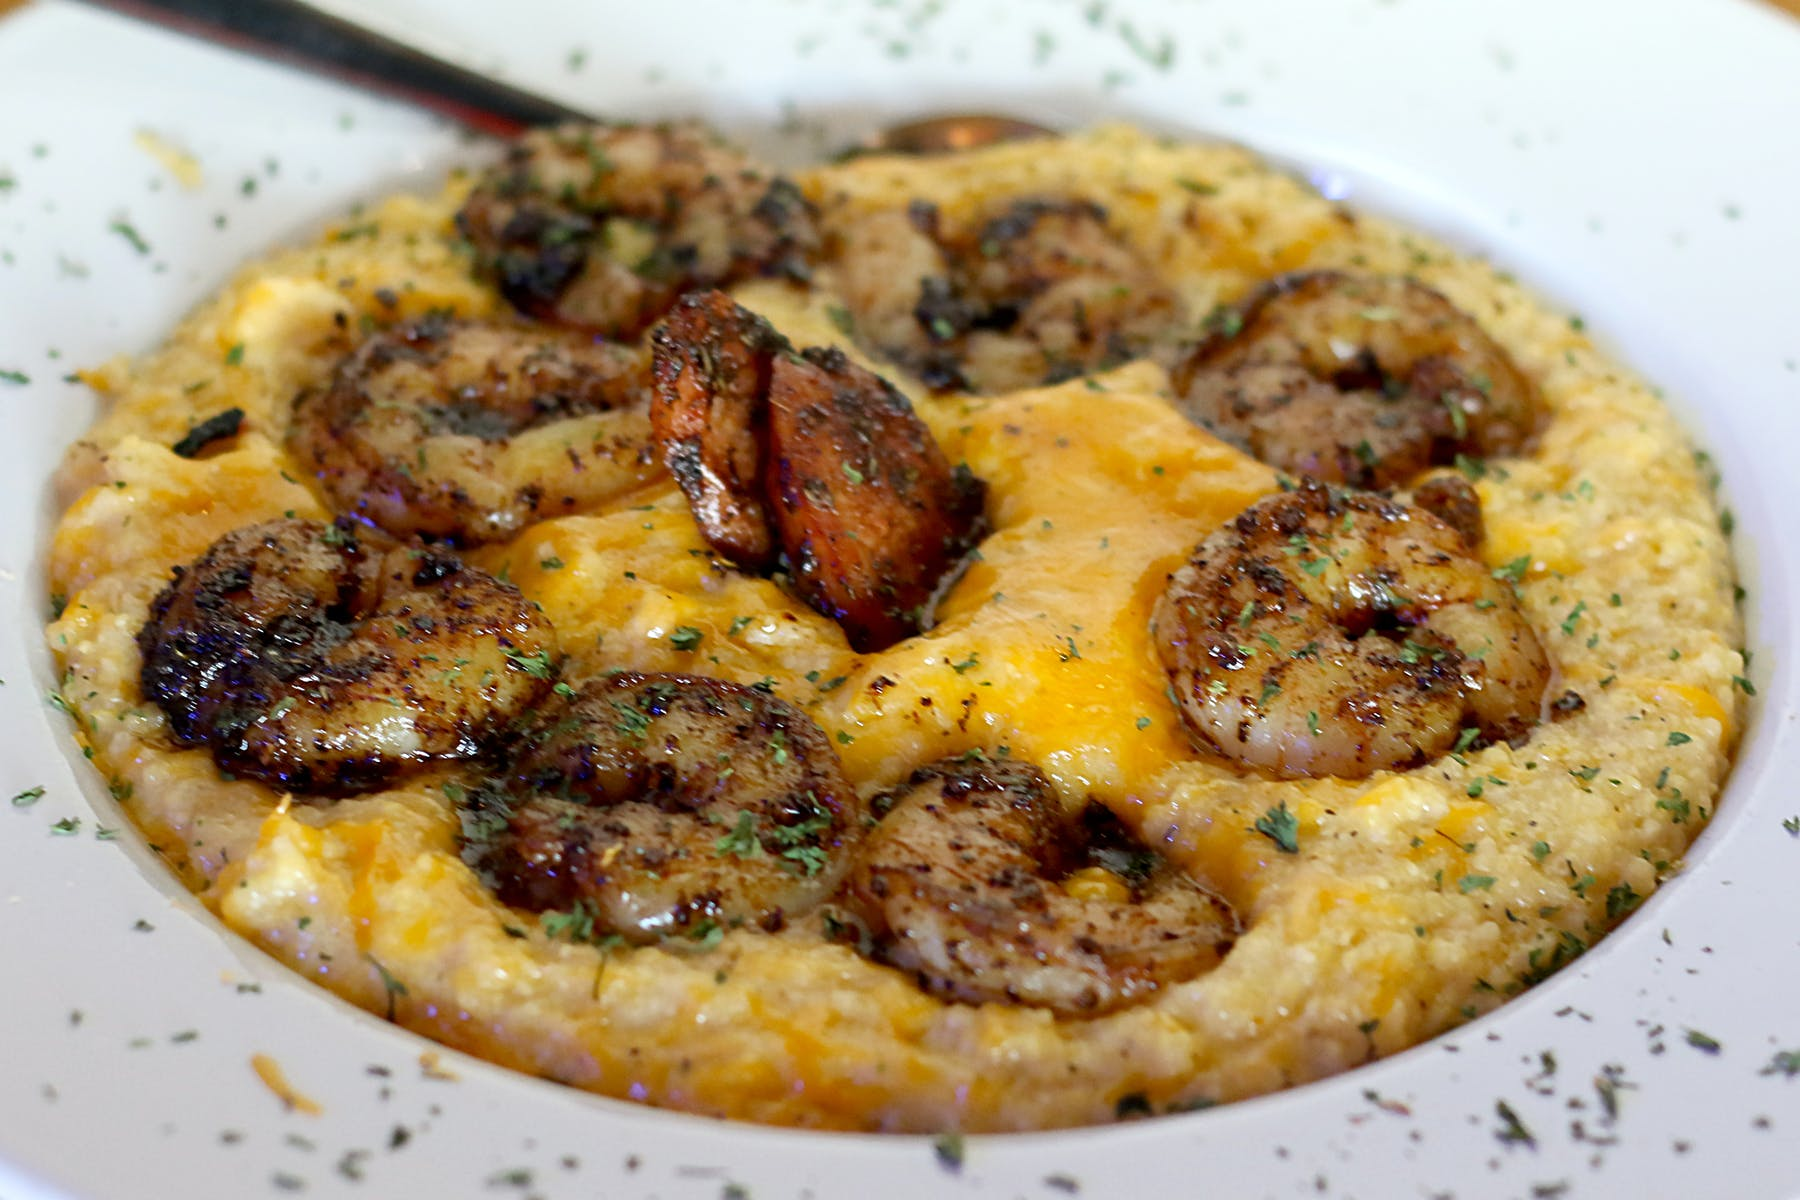 a bowl of grits